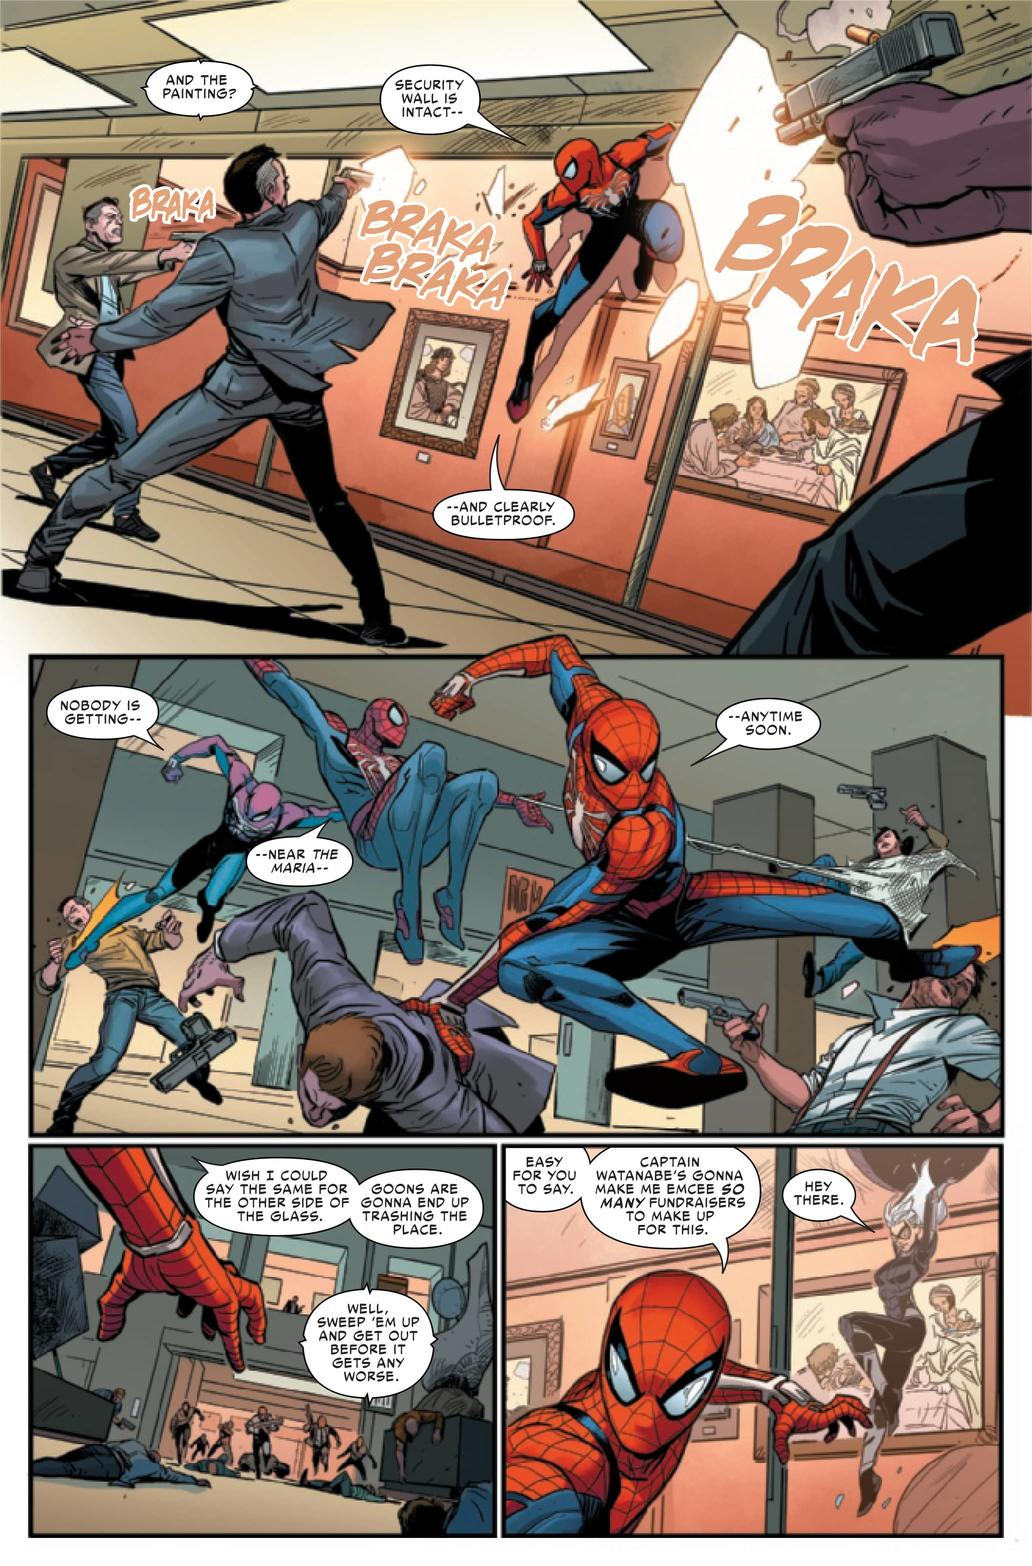 MARVEL'S SPIDER-MAN: THE BLACK CAT STRIKES #1 Preview — Art by Luca Maresca